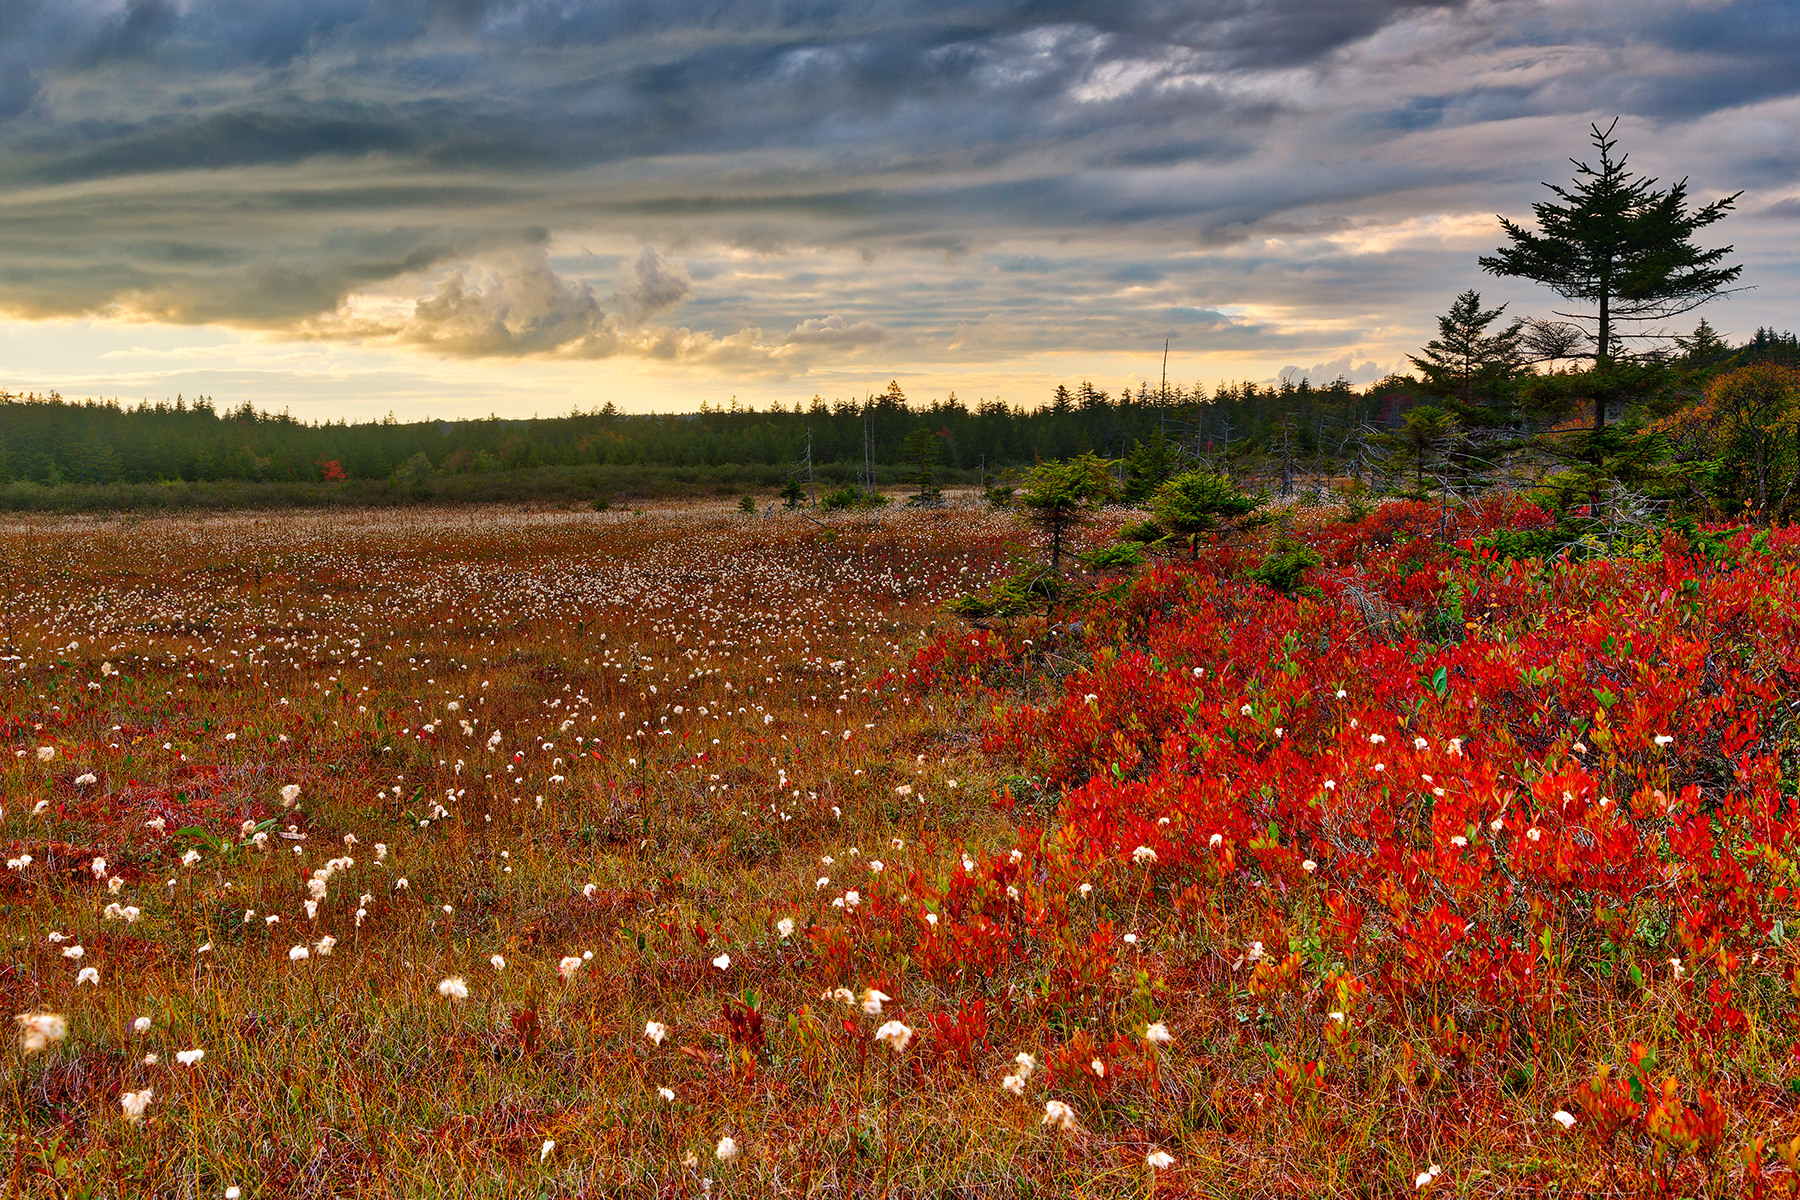 Golden Ruby Hour - Dolly Sods HDR, , Outside, Scenery, Scene, HQ Photo